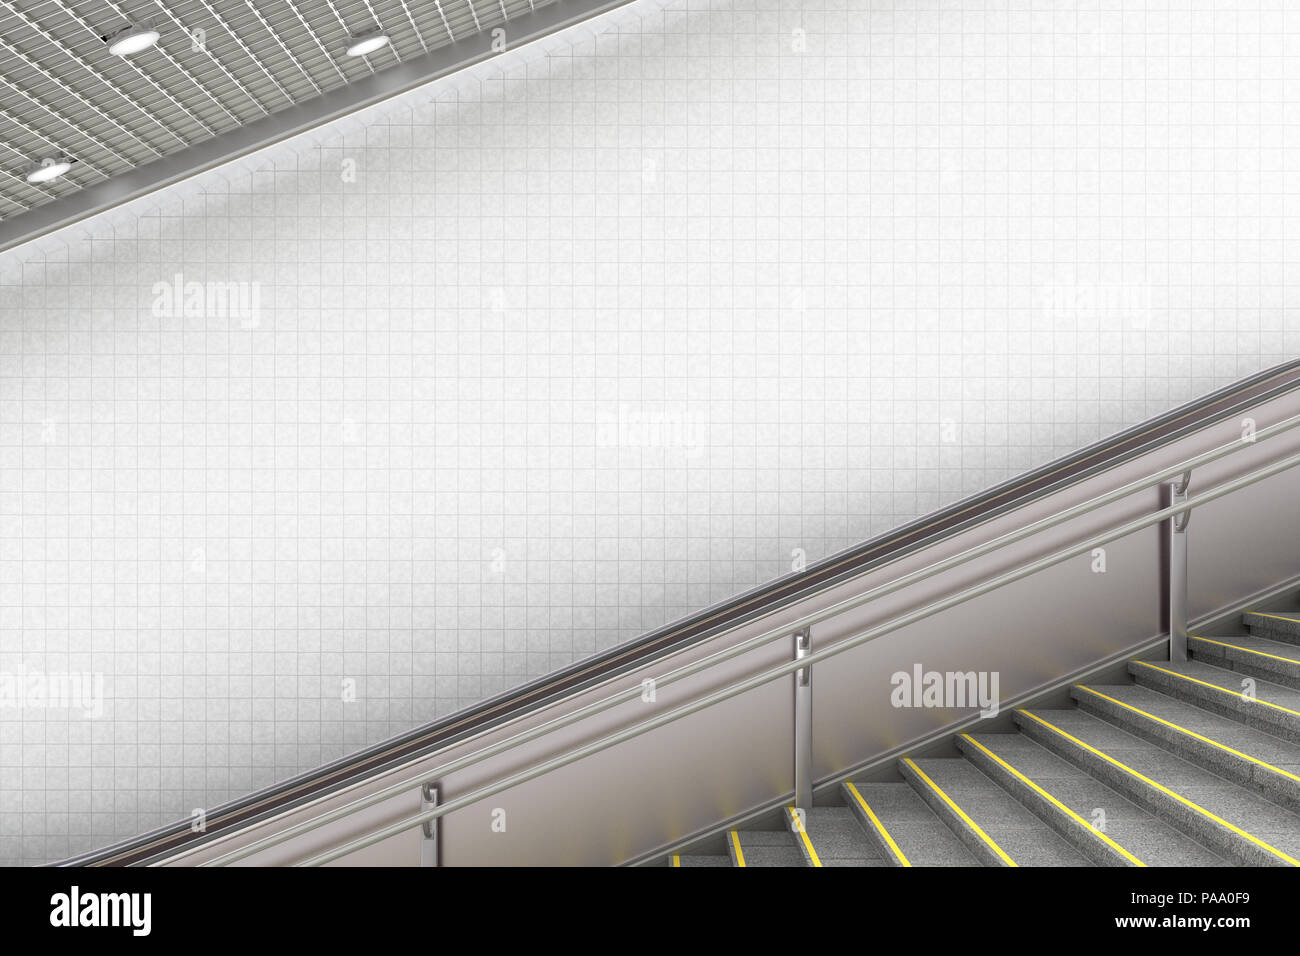 Blank underground escalator wall for advertising poster. 3d illustration - Stock Image